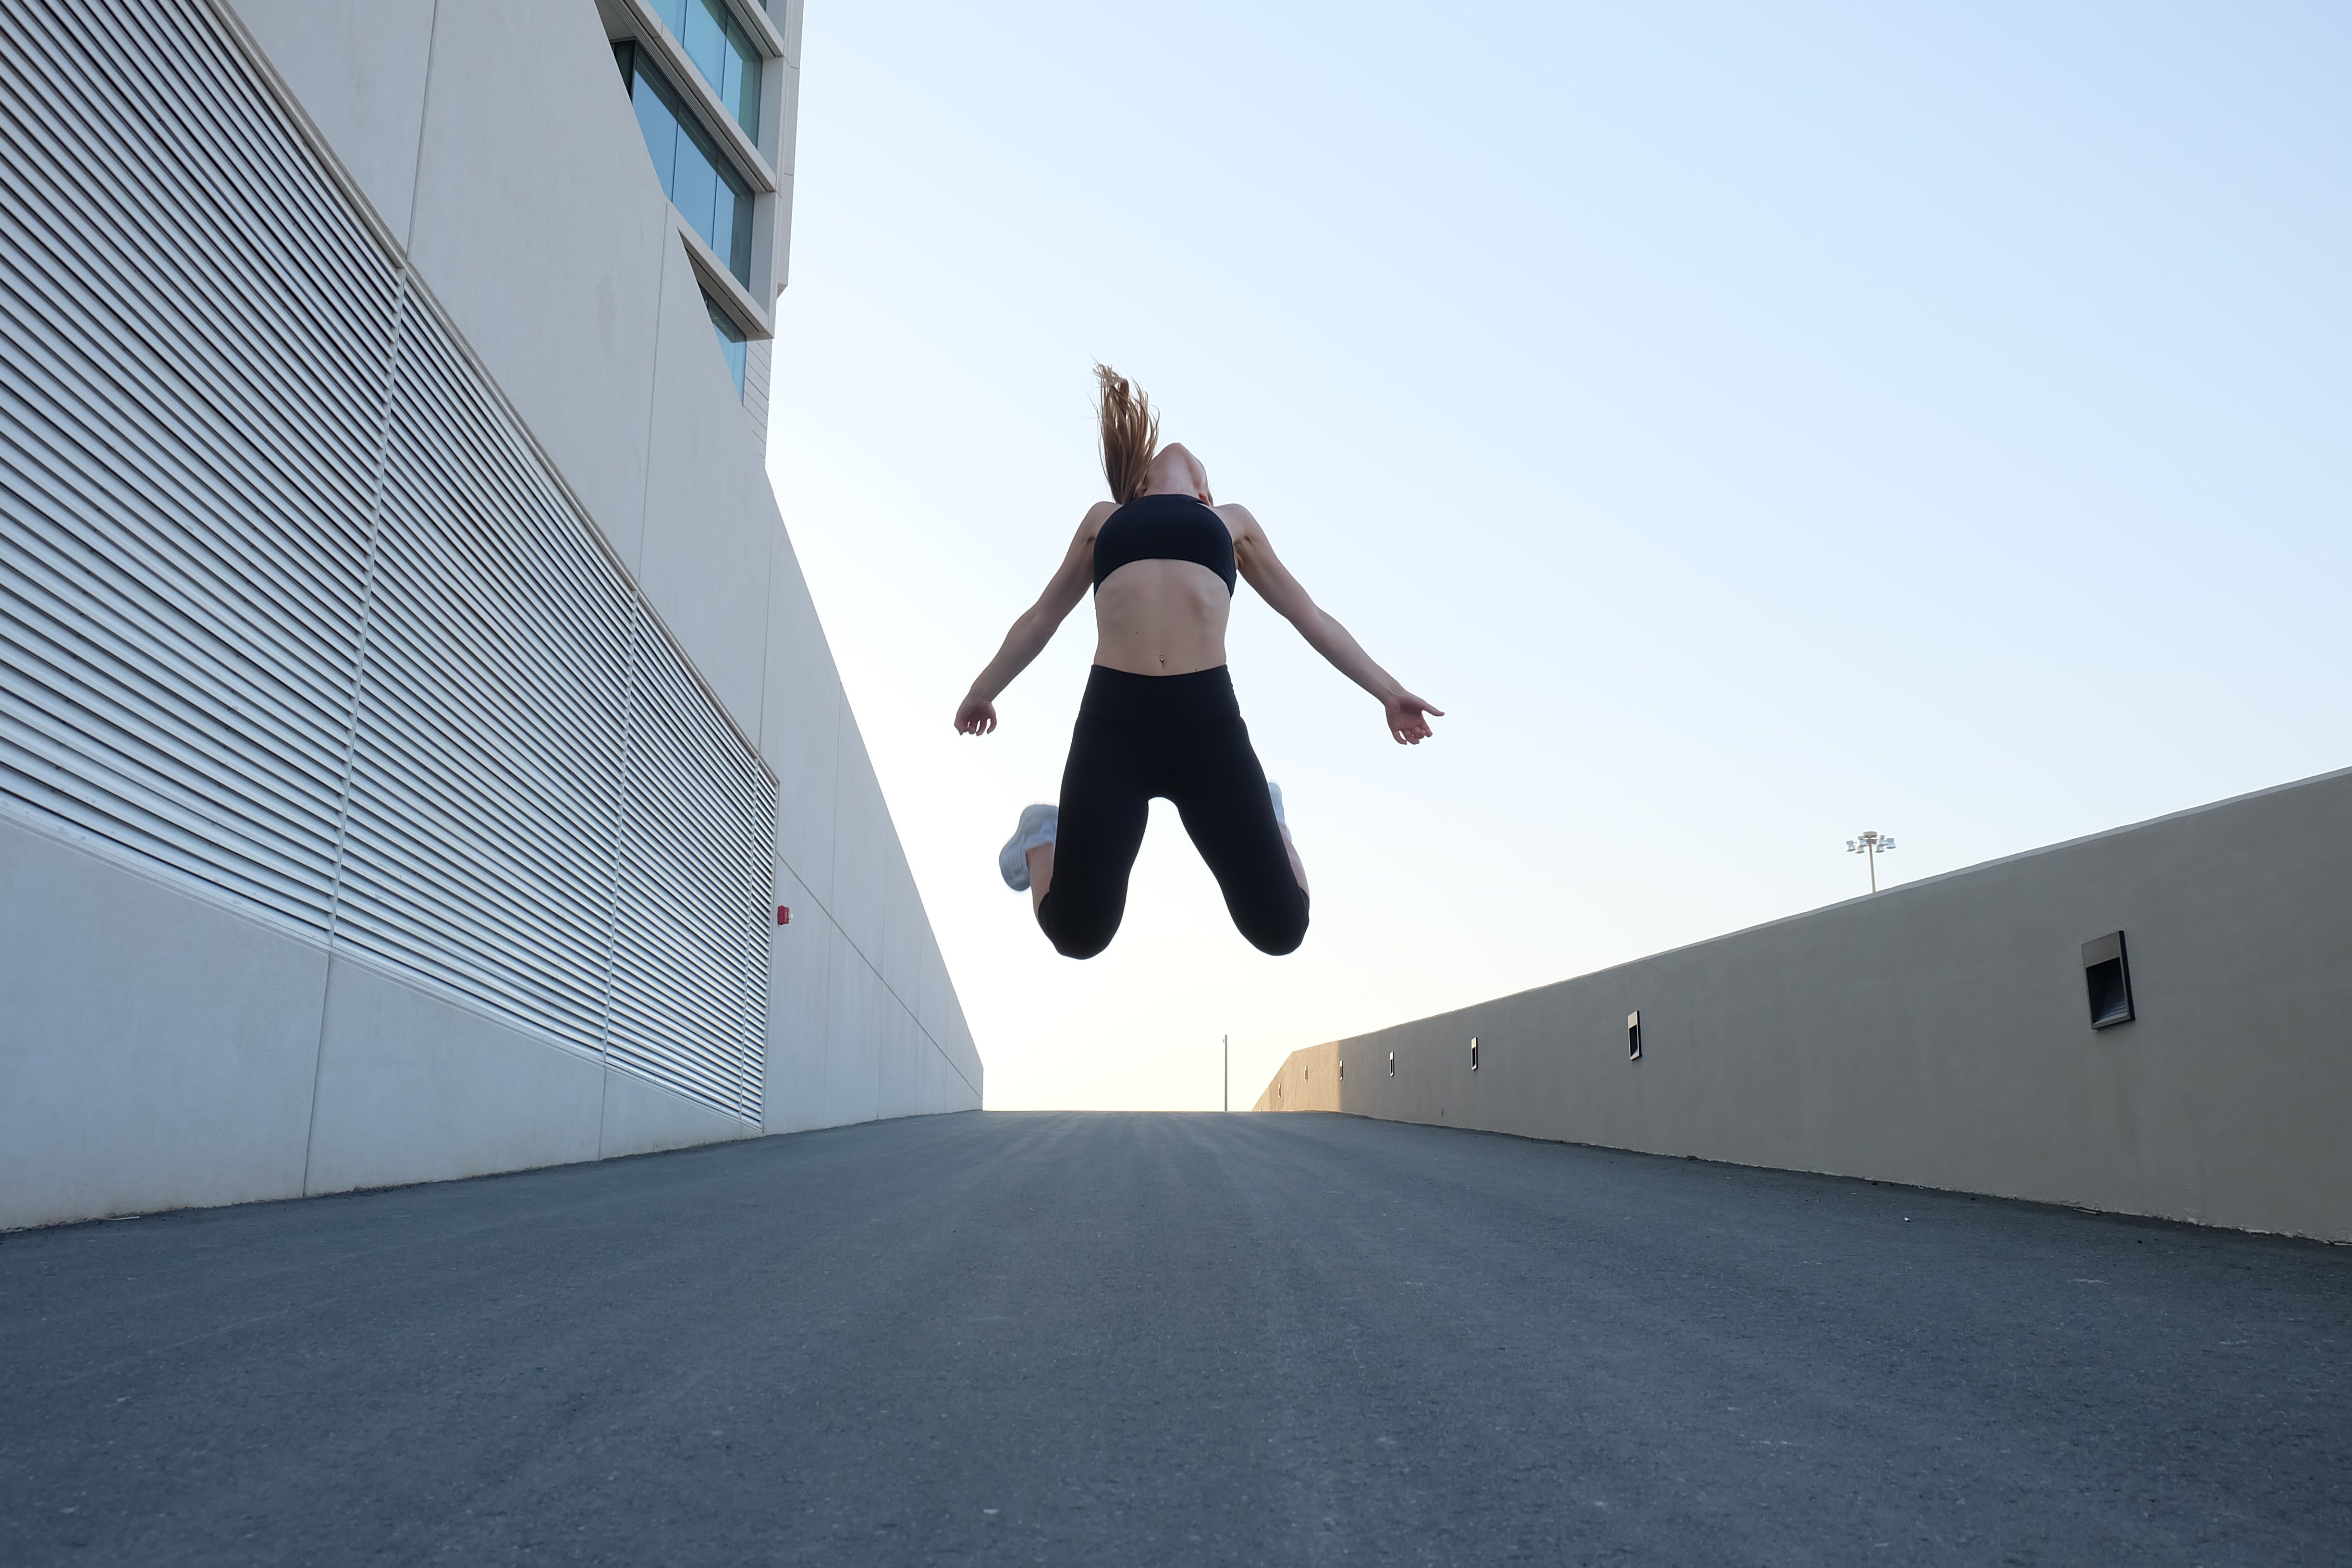 Woman Wearing Black Crop Top Jumping Beside the Building